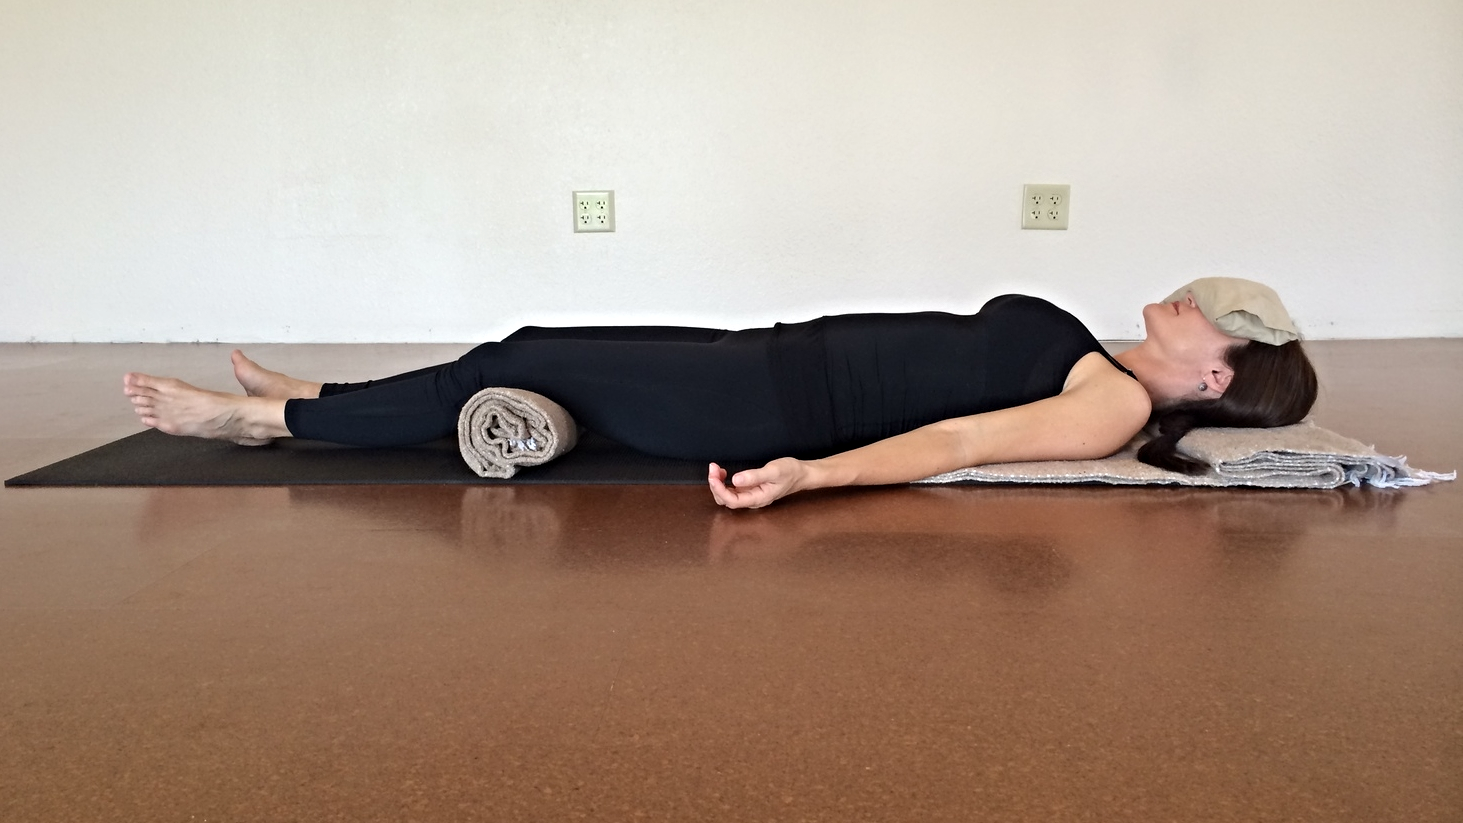 Savasana, or corpse pose, with the body lightly supported and an eye pillow to support rest.